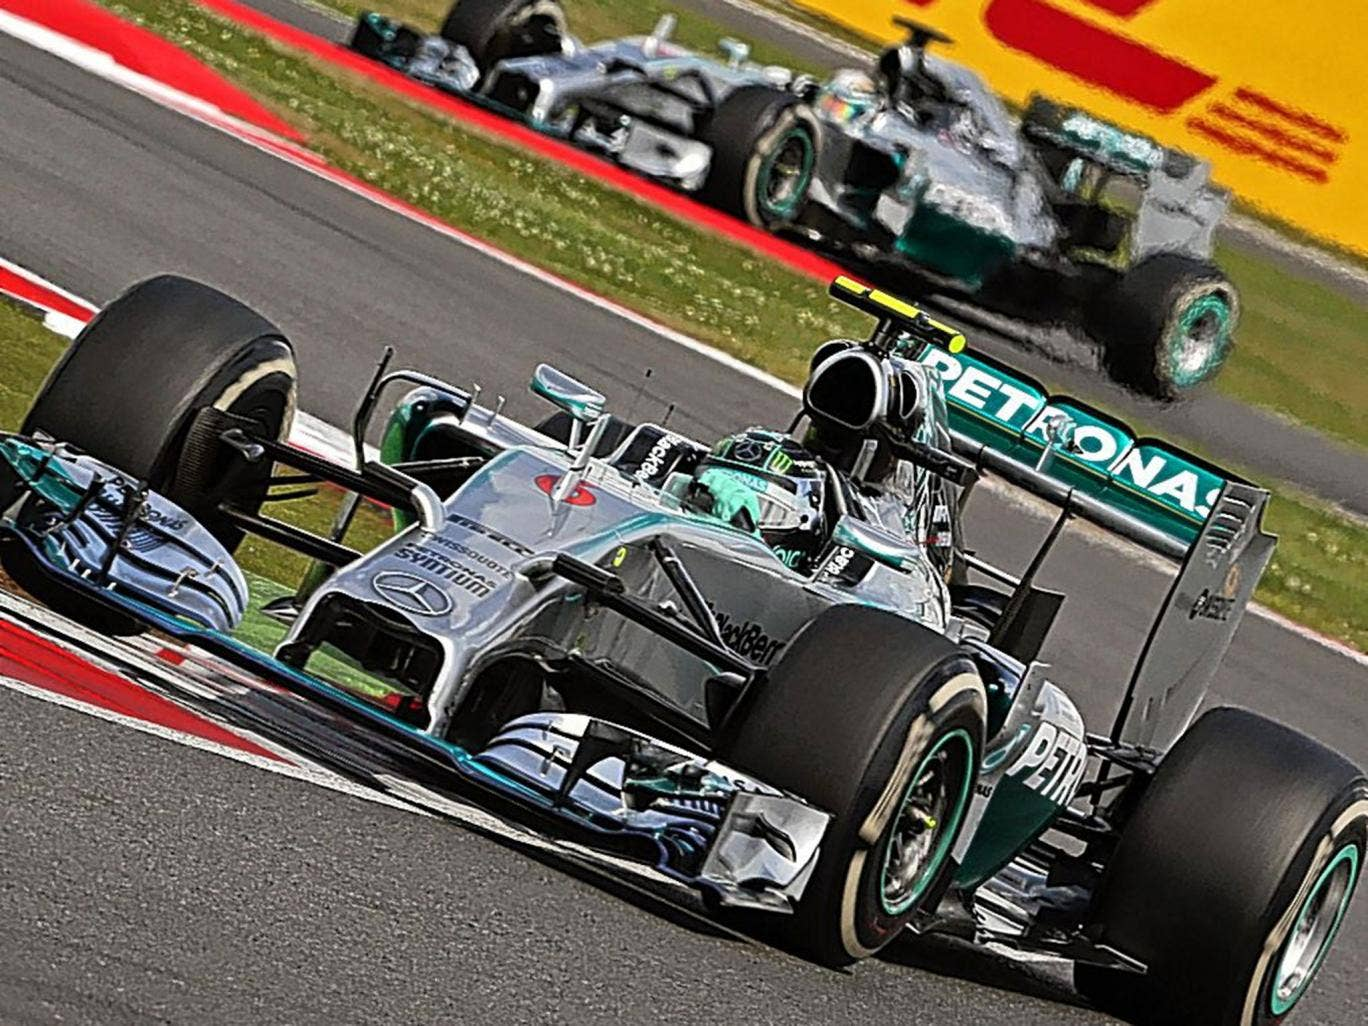 Nico Rosberg drives ahead of Lewis Hamilton at Sunday's British Grand Prix. The head-to-head between the Mercedes team-mates has delivered at times breathless racing